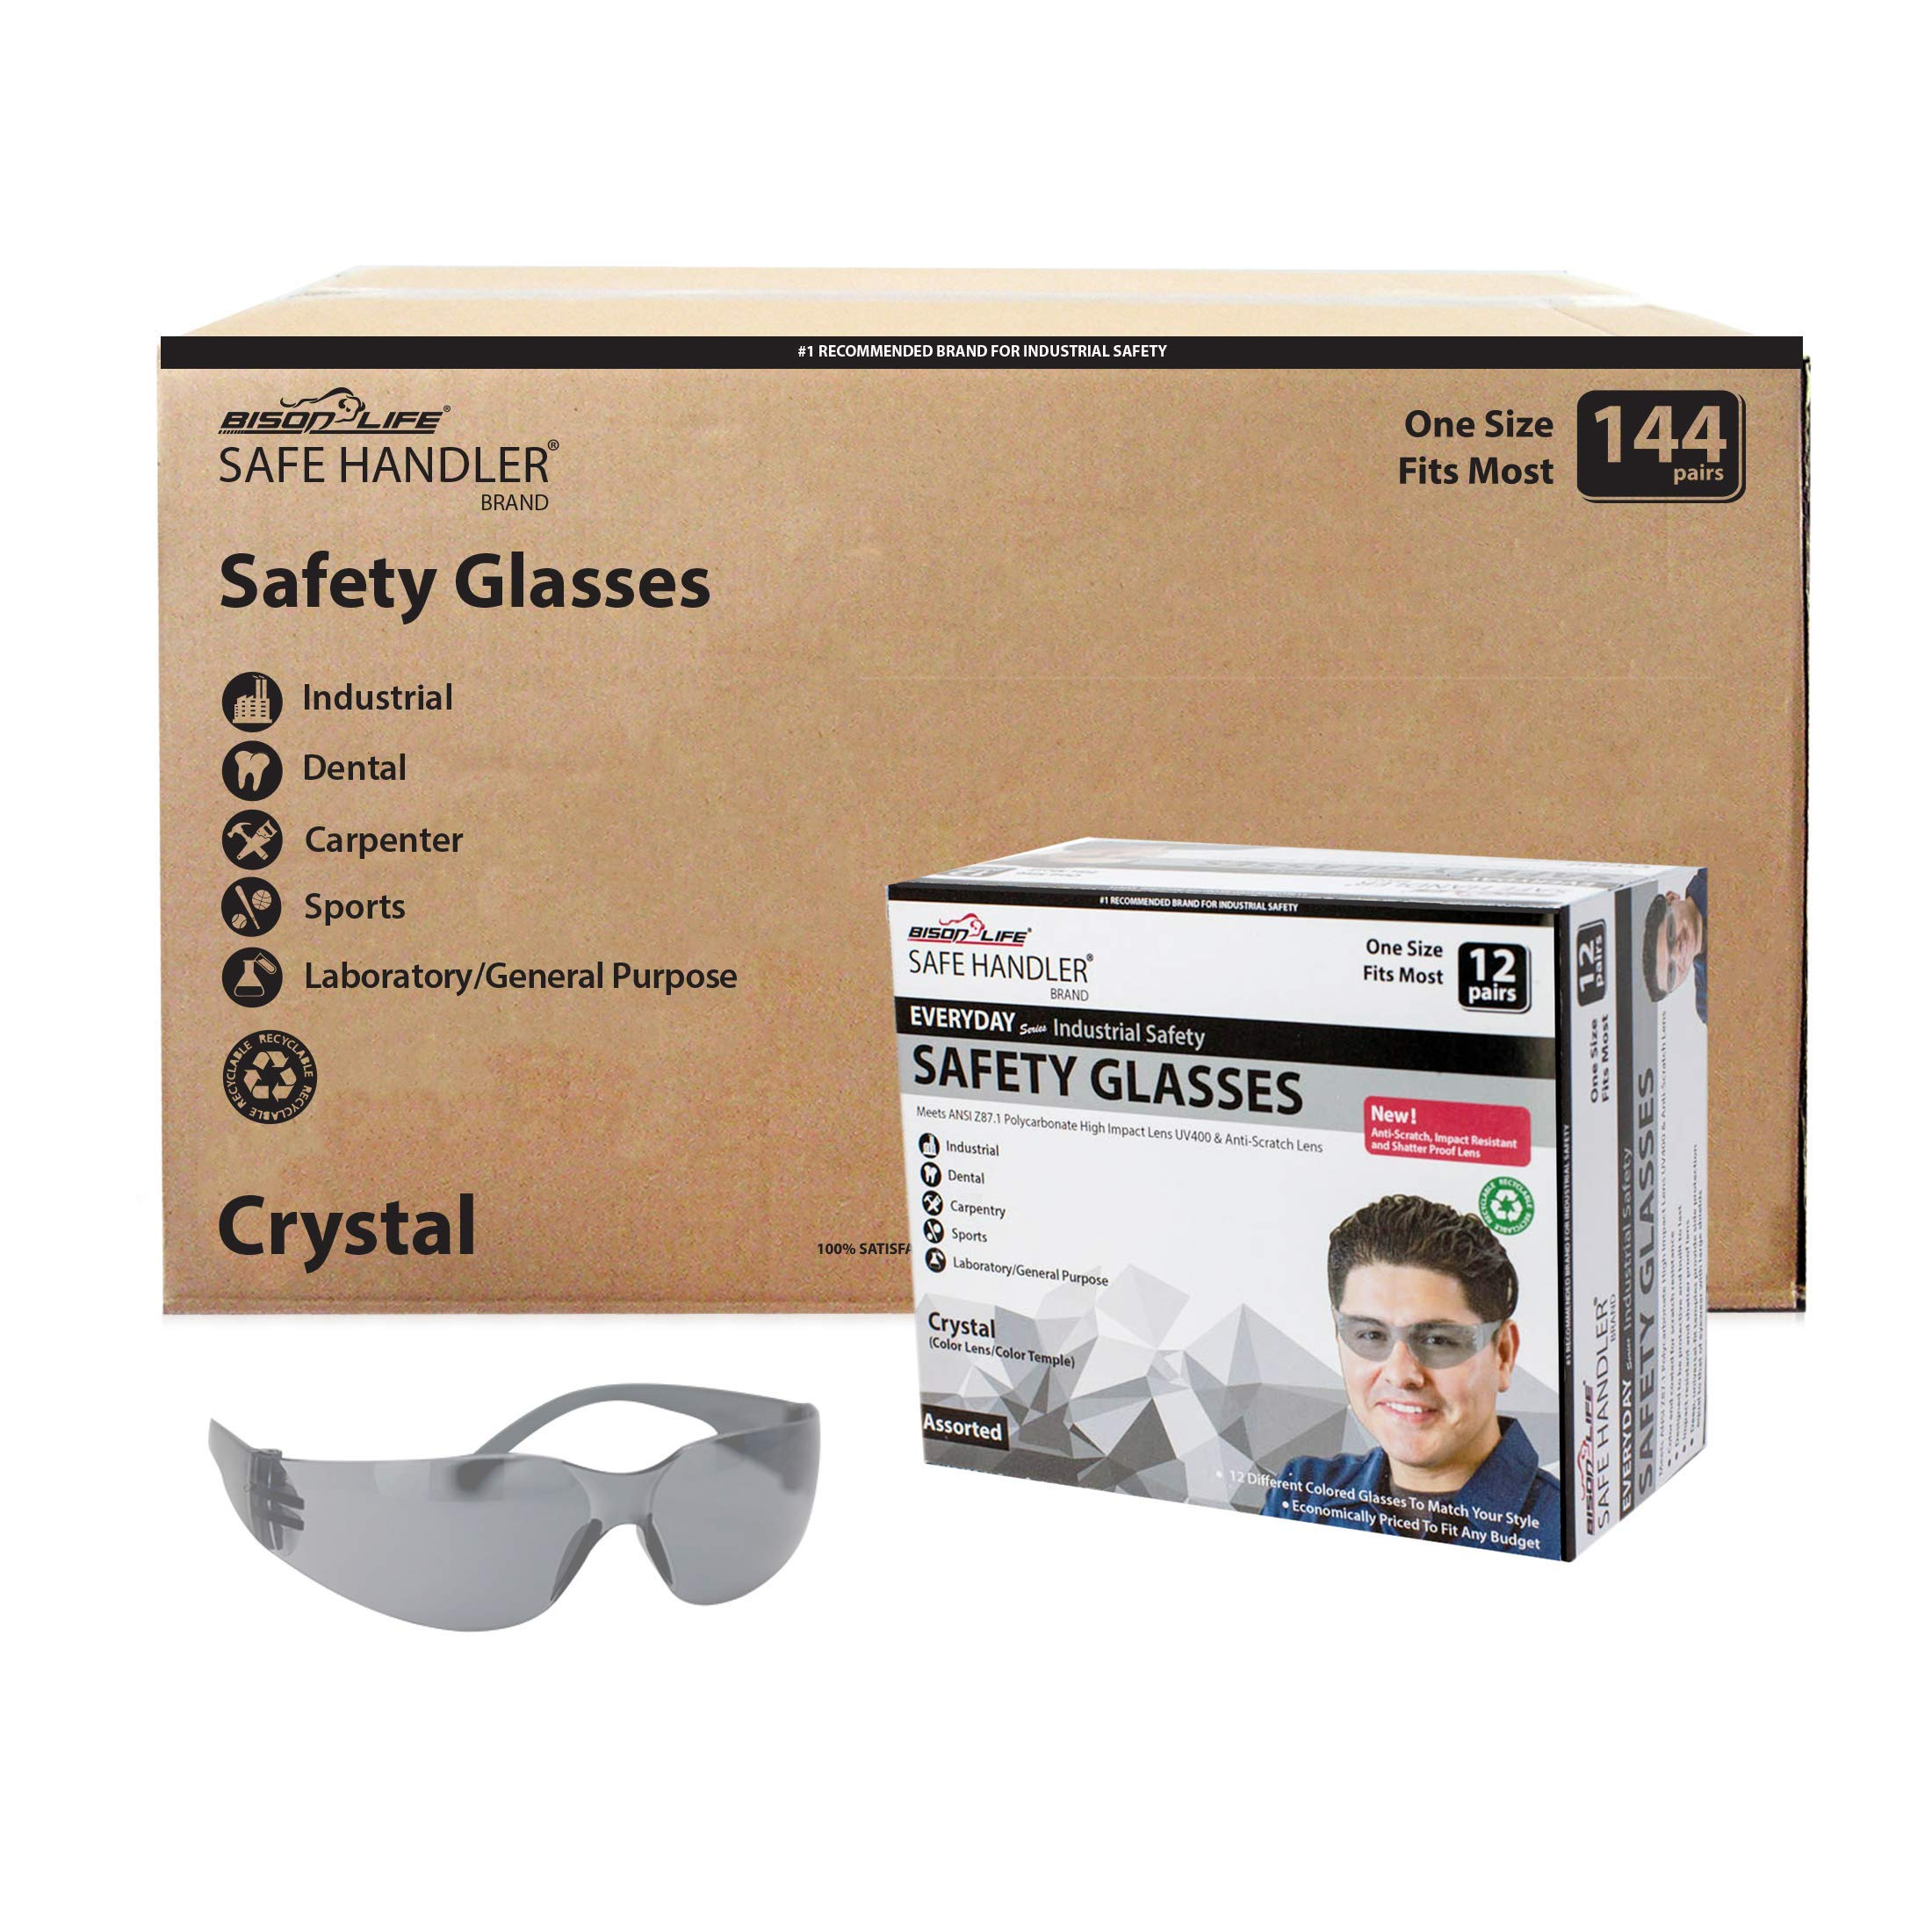 SAFE HANDLER Full Color Safety Glasses | One Size, Adult, Youth, Full Color Polycarbonate Lens and Temple, GREY, Box of 12 (Case of 12 Boxes, 144 Pairs Total)